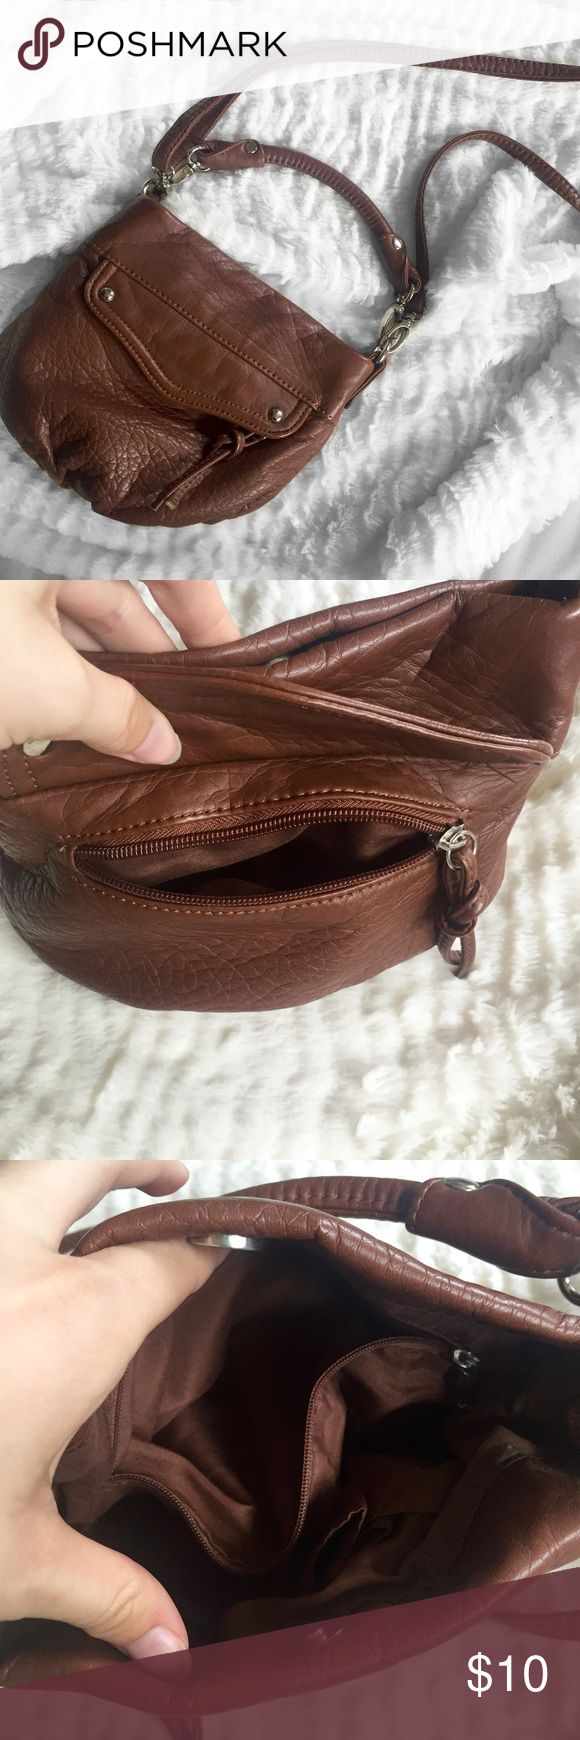 """Vegan / Faux Brown Leather Crossbody Bag Candie's Brand • Faux / vegan leather • Has a flap on the front with a zipper pocket underneath • 2 card pouches inside as well as a zipper pocket • In perfect condition • Detachable handle with adjustable crossbody strap • 8.5"""" x 7"""" x approx. 3"""" Bags Crossbody Bags"""